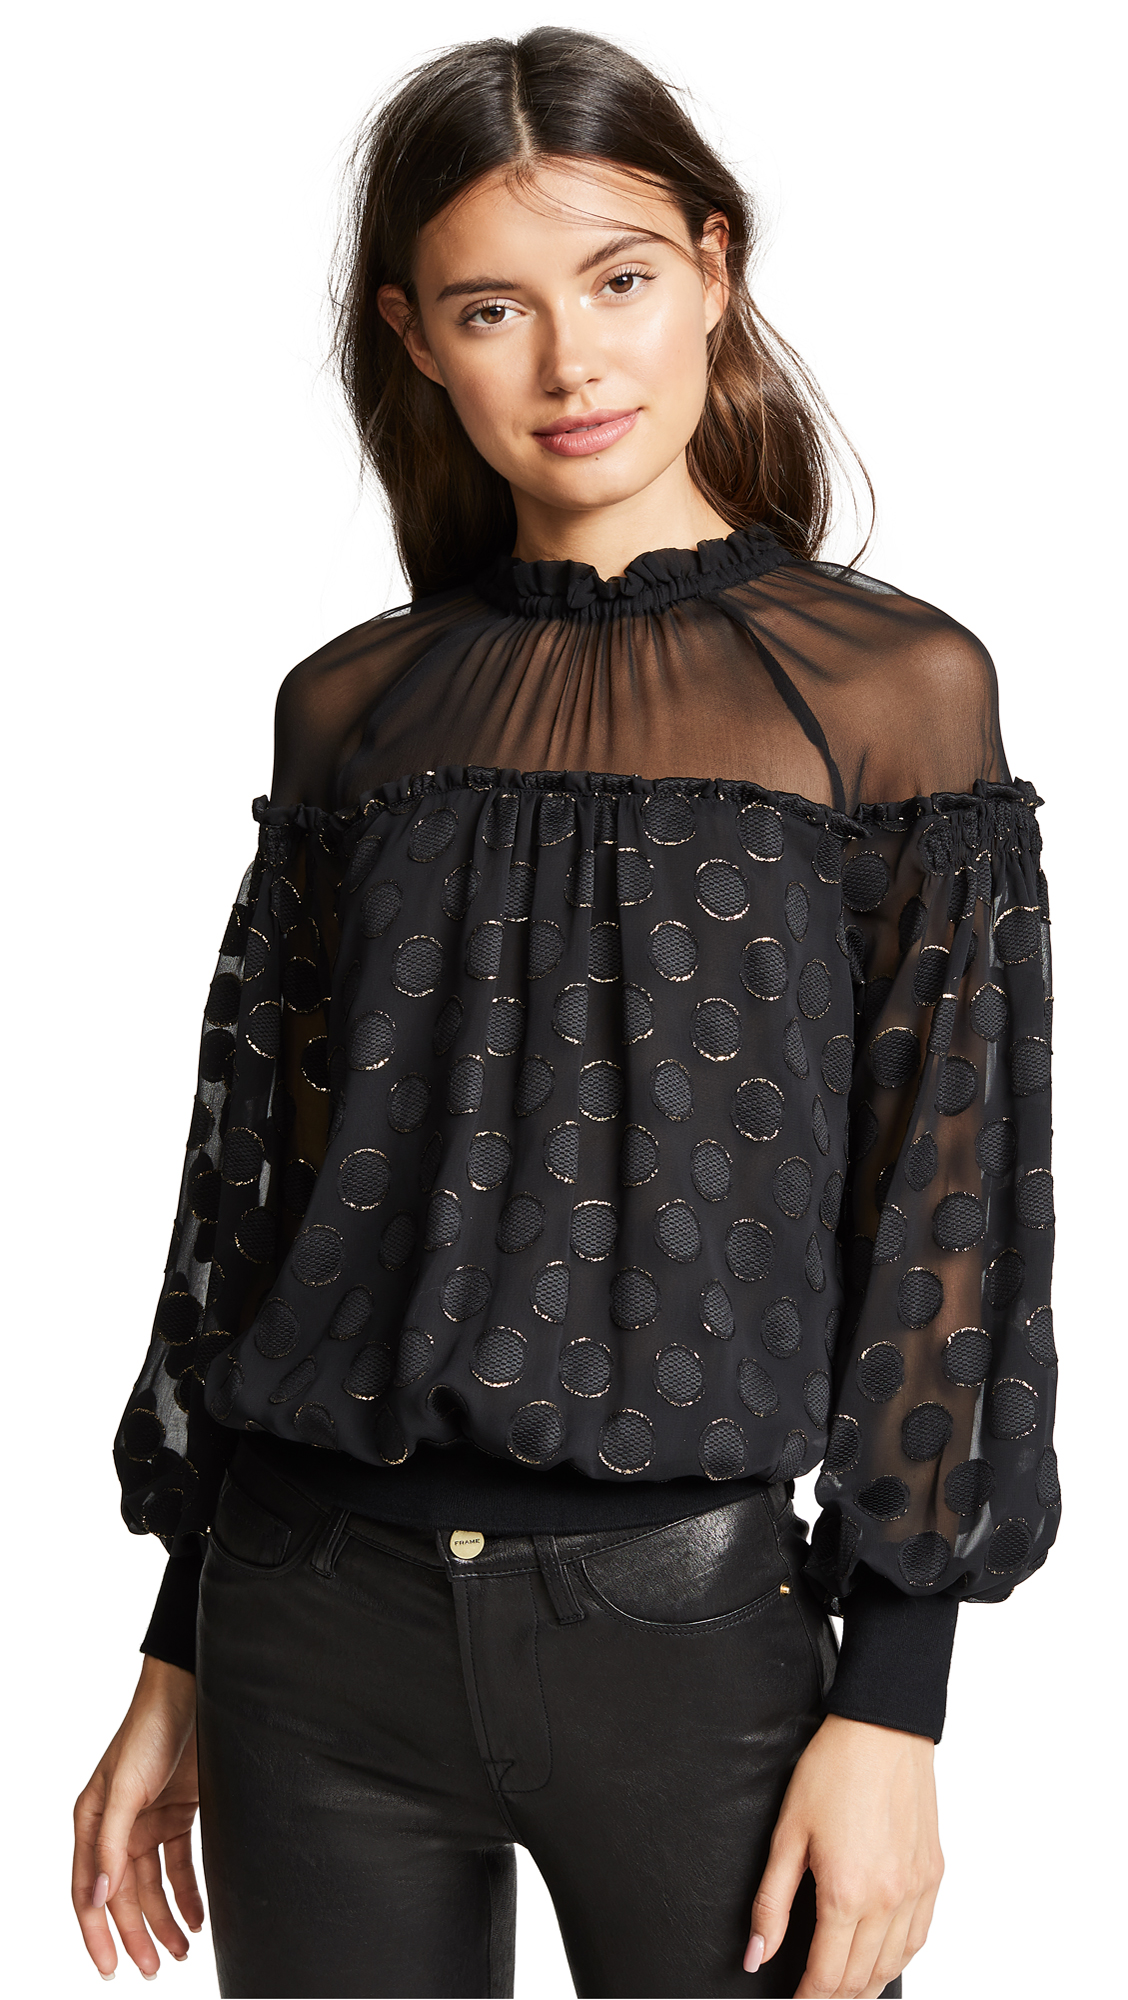 Ramy Brook Evelina Top In Black/Gold Combo